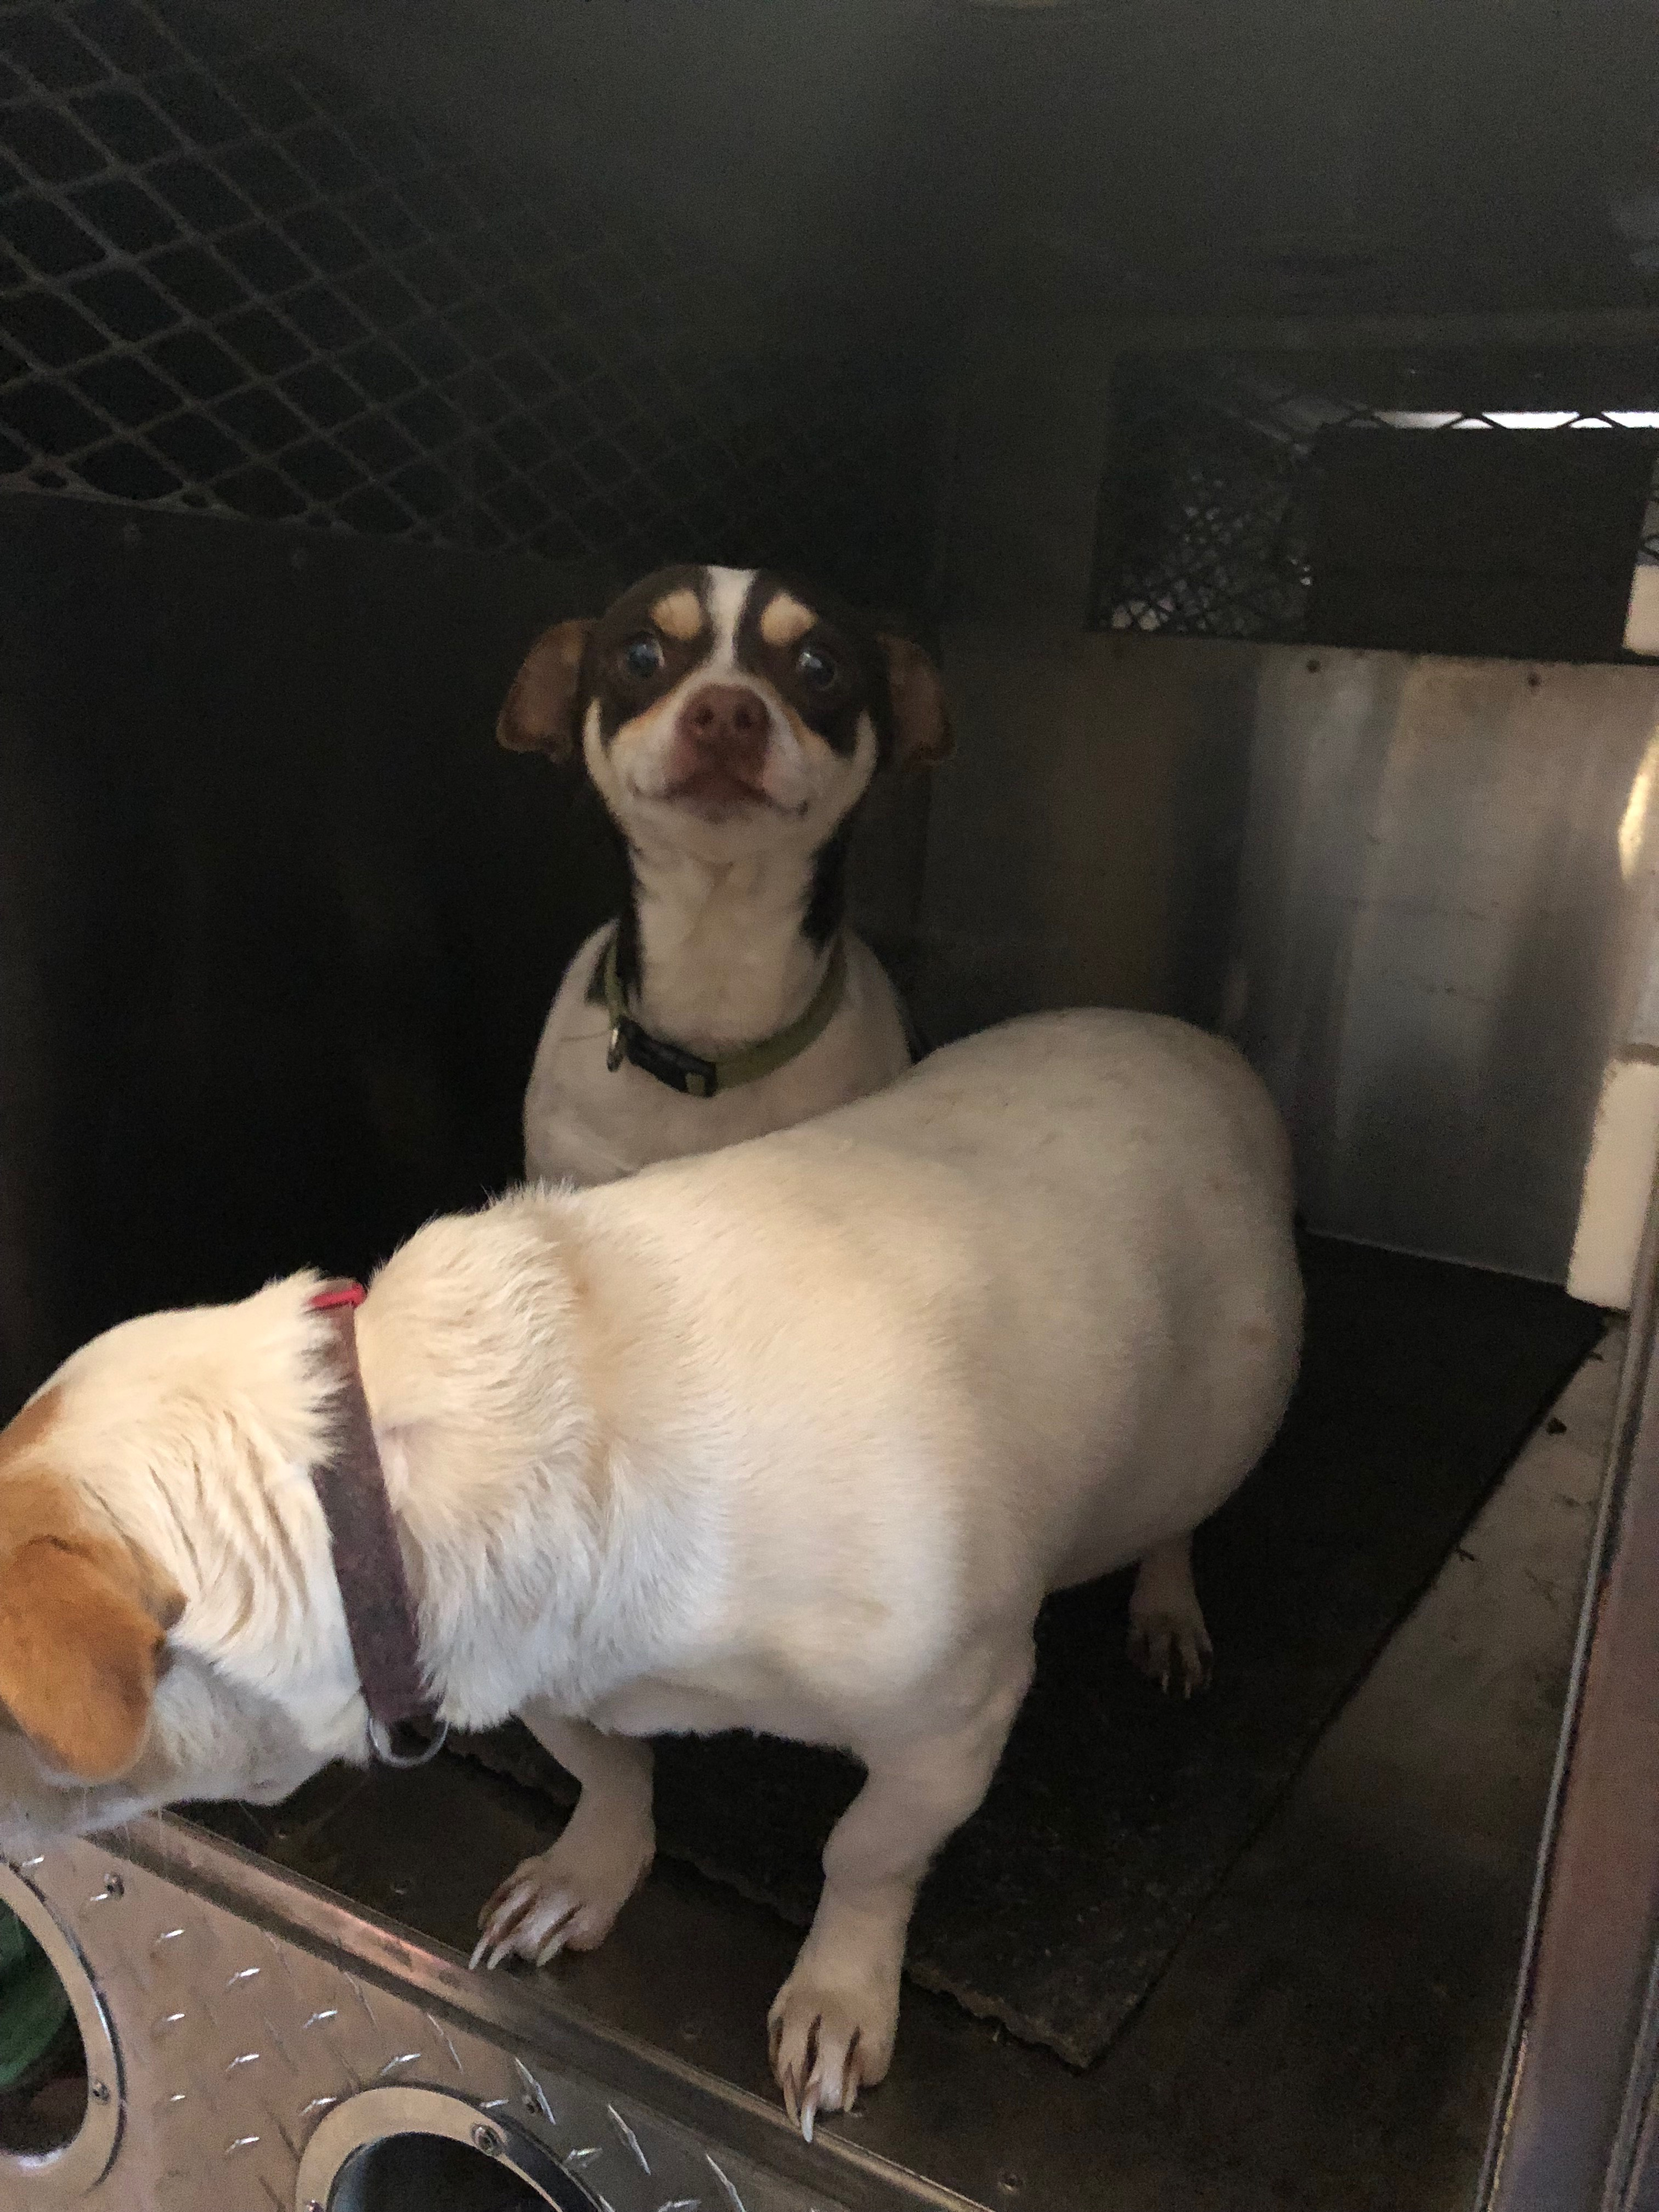 Bruno (in the background) was one of the dogs surrendered by the San Marcos homeowner. (City of San Marcos)